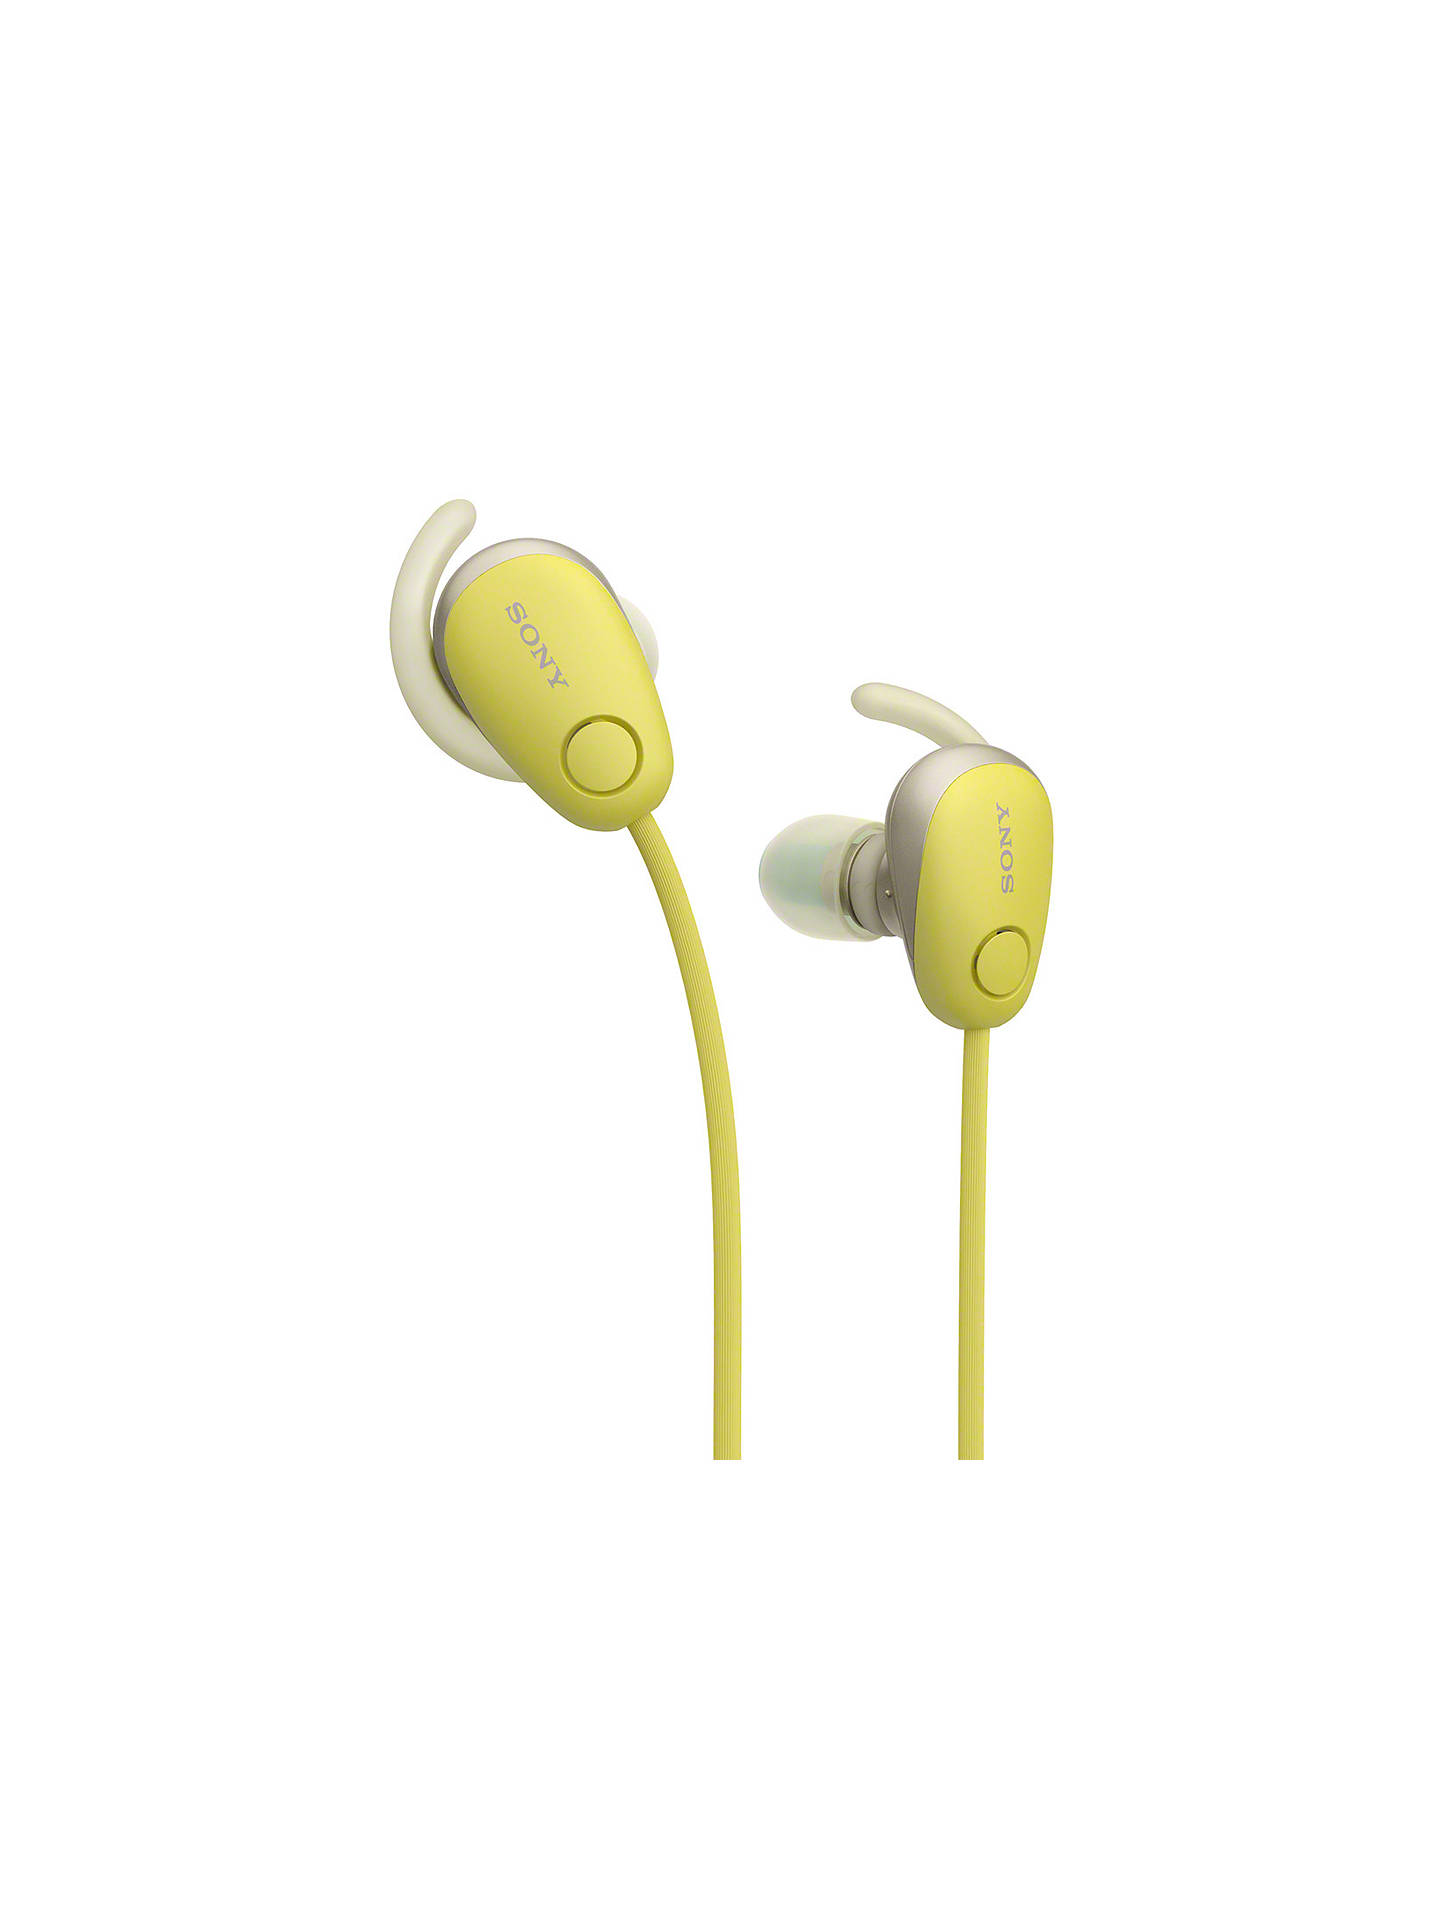 BuySony WI-SP600N Noise Cancelling Bluetooth NFC Splash Resistant Wireless Sports In-Ear Headphones with Mic/Remote, Yellow Online at johnlewis.com